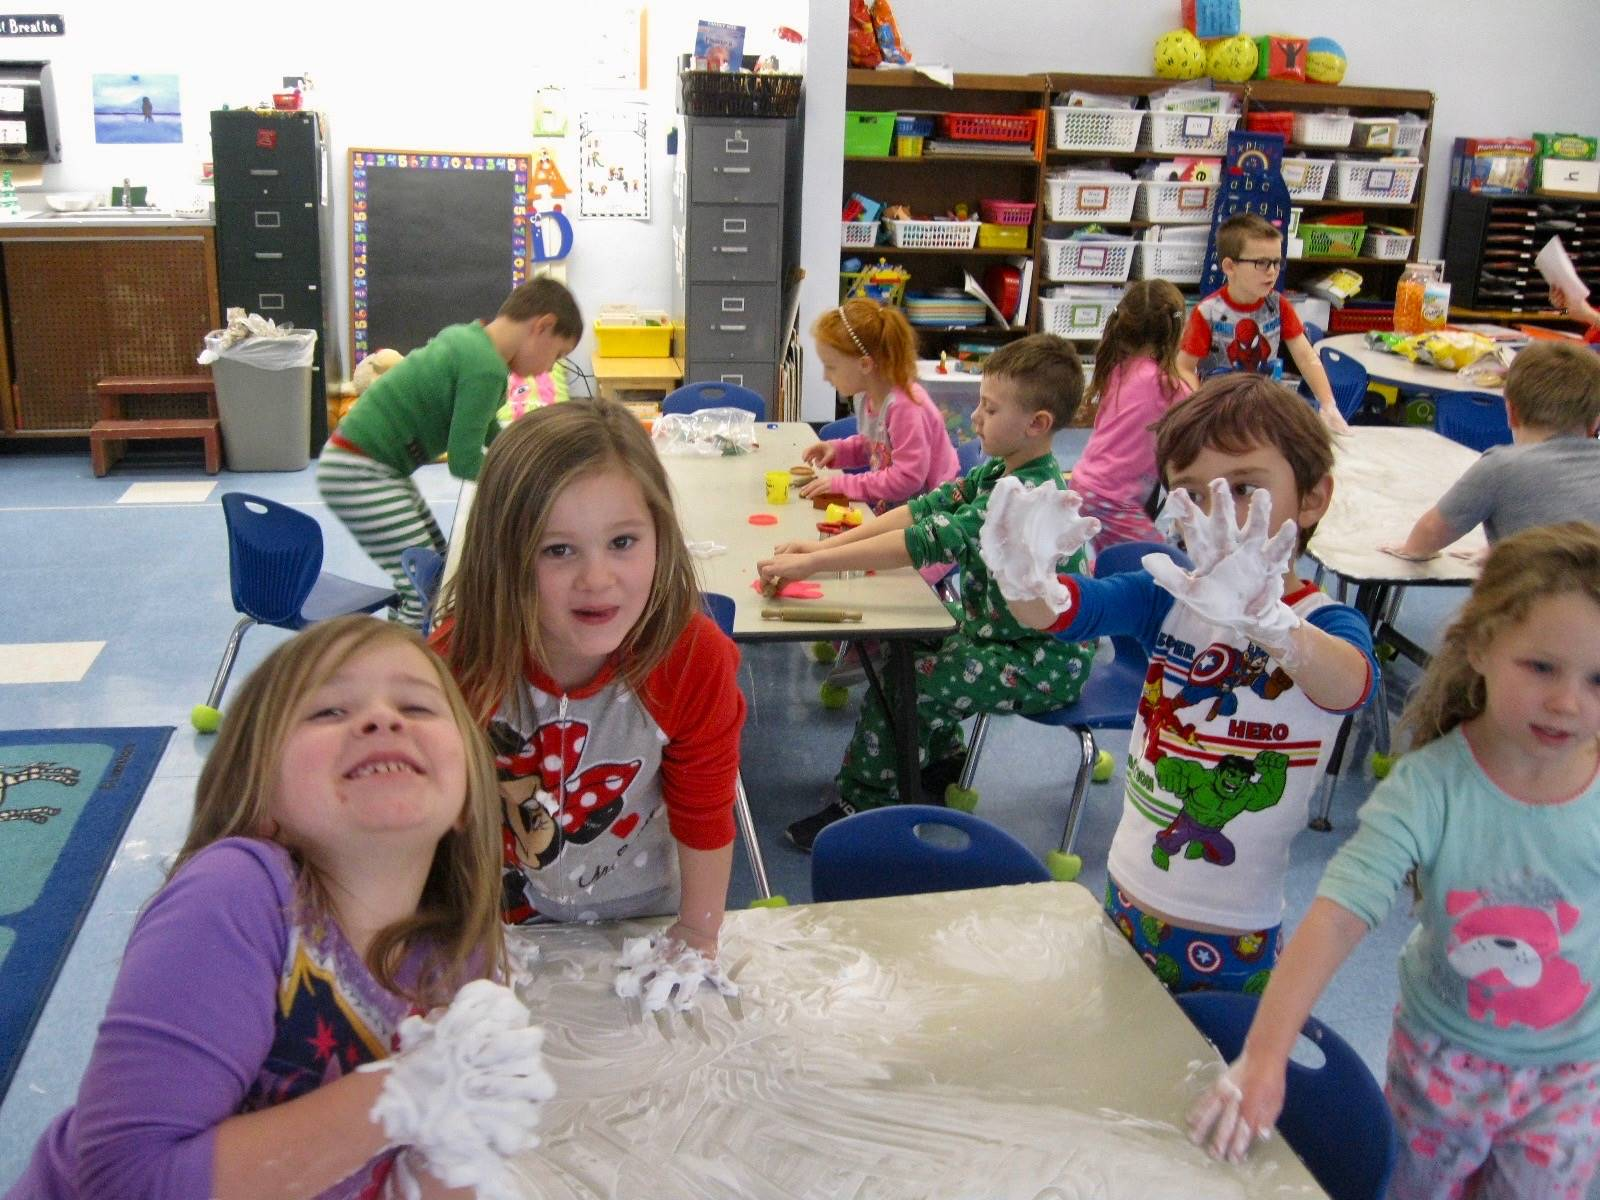 4 students show hands with shaving cream.